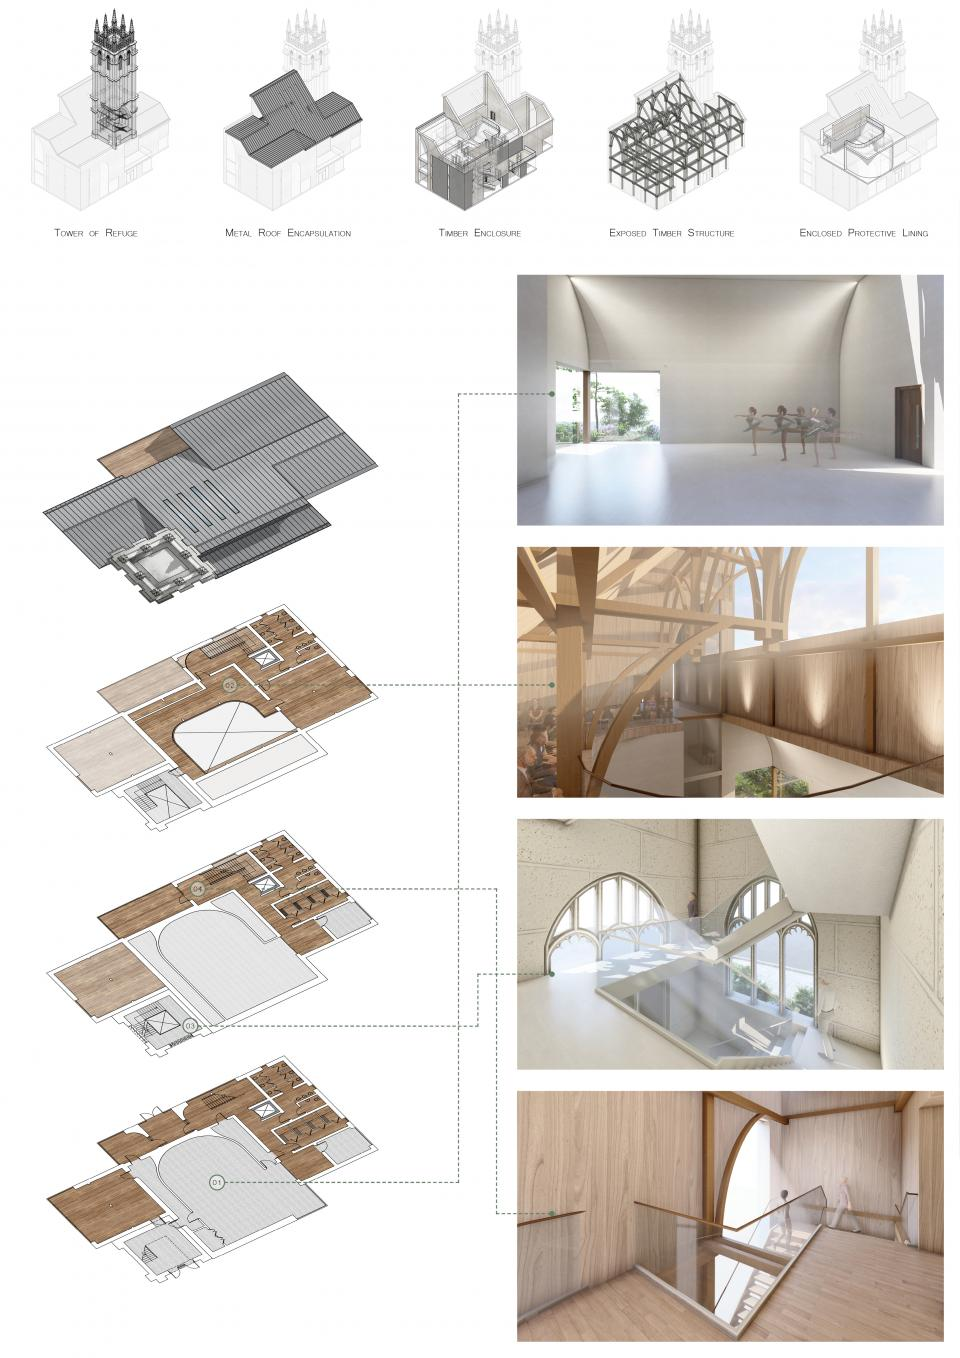 Ana Taylor_Architecture - MArch_2020_Tectonics of Sanctuary_7.jpg